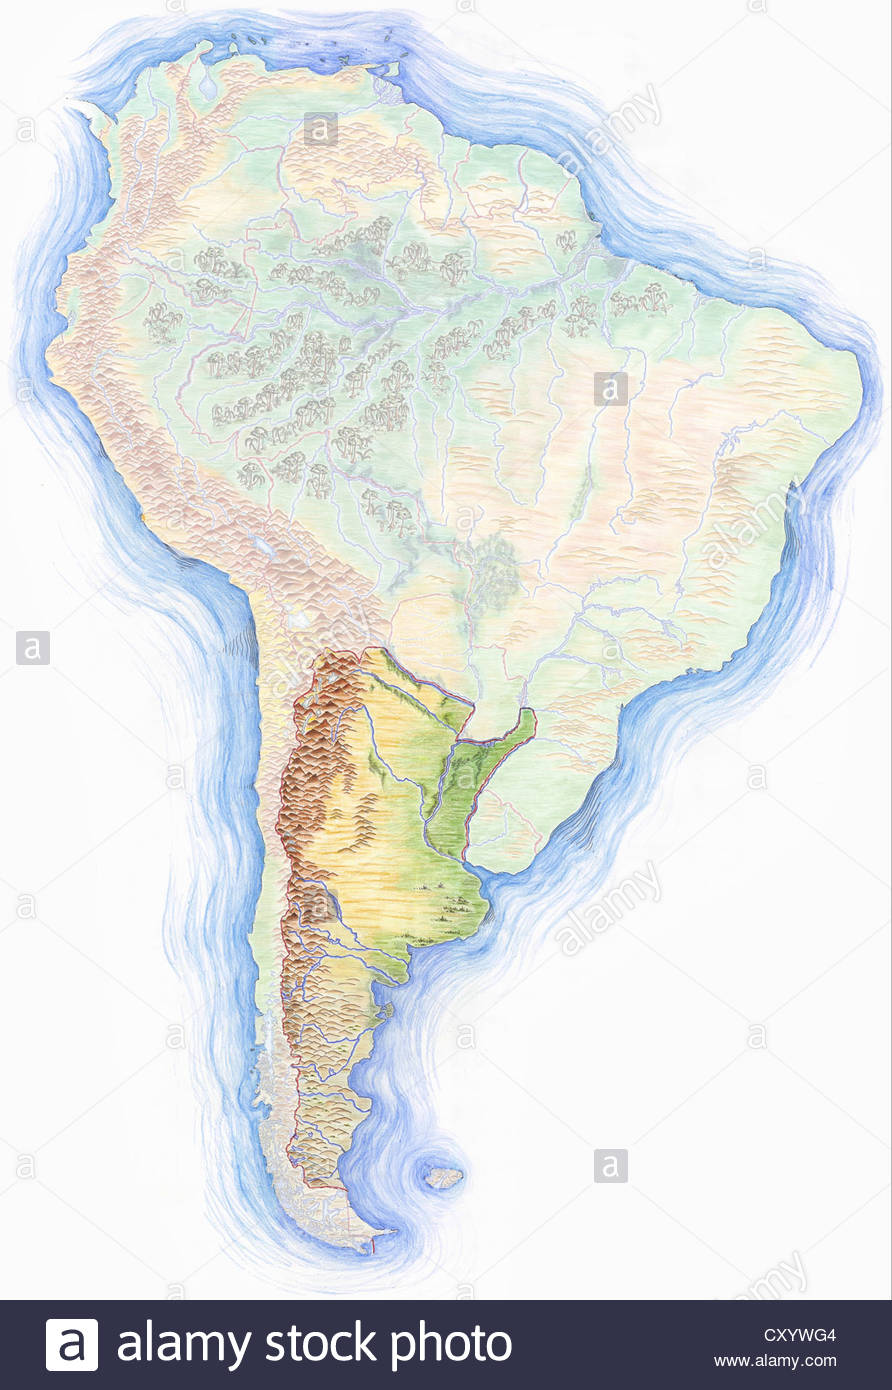 892x1390 South America Map Drawing